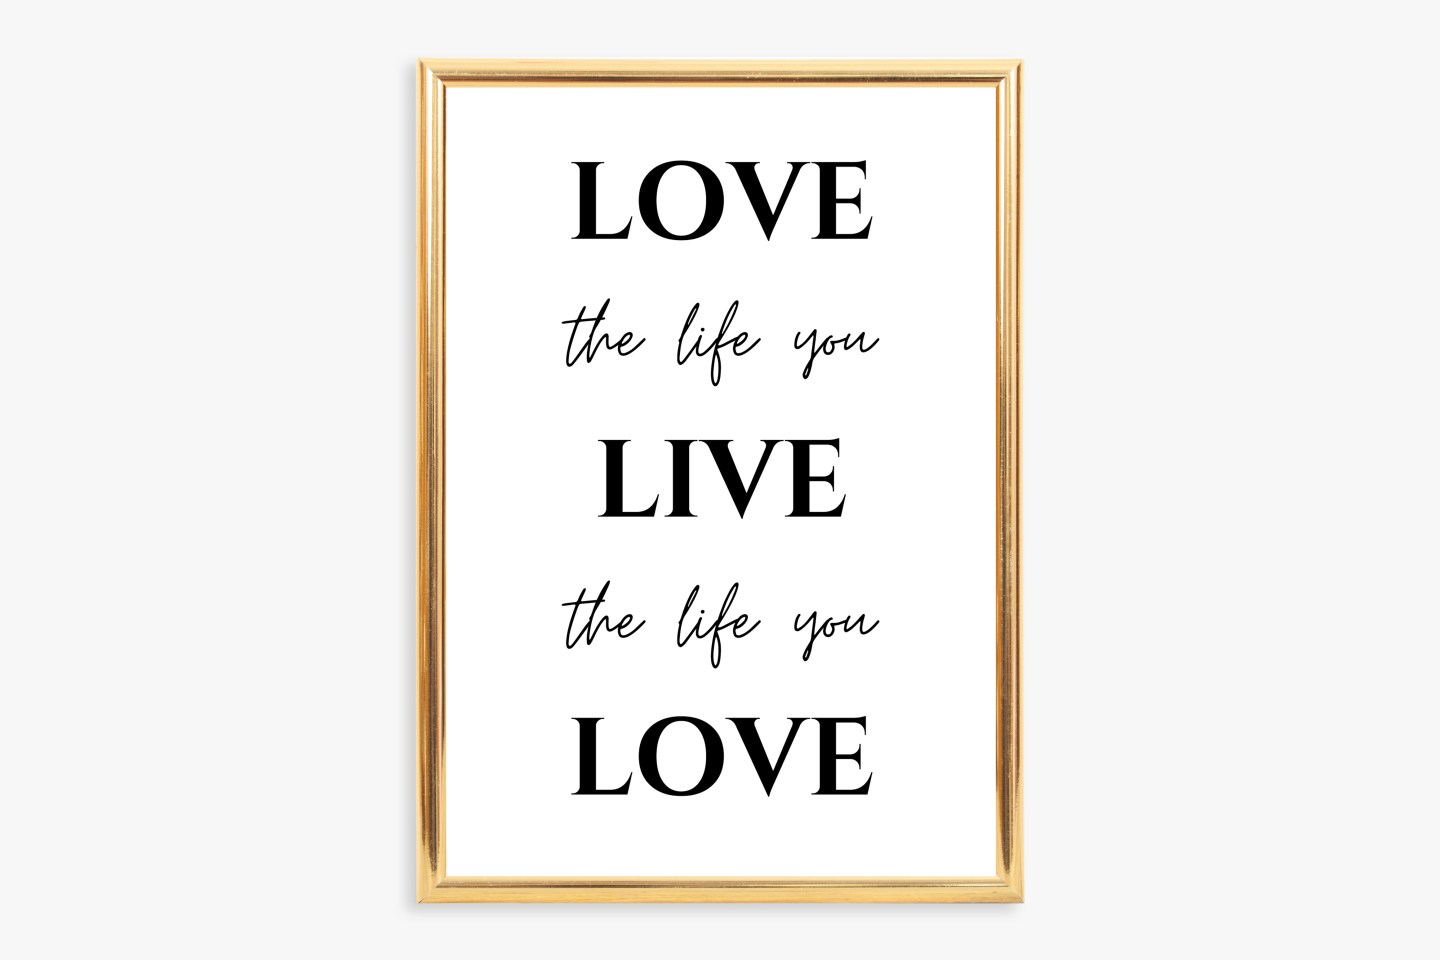 Printable Inspirational Quote Wall Art: Love The Life You Live / Live The Life You Love